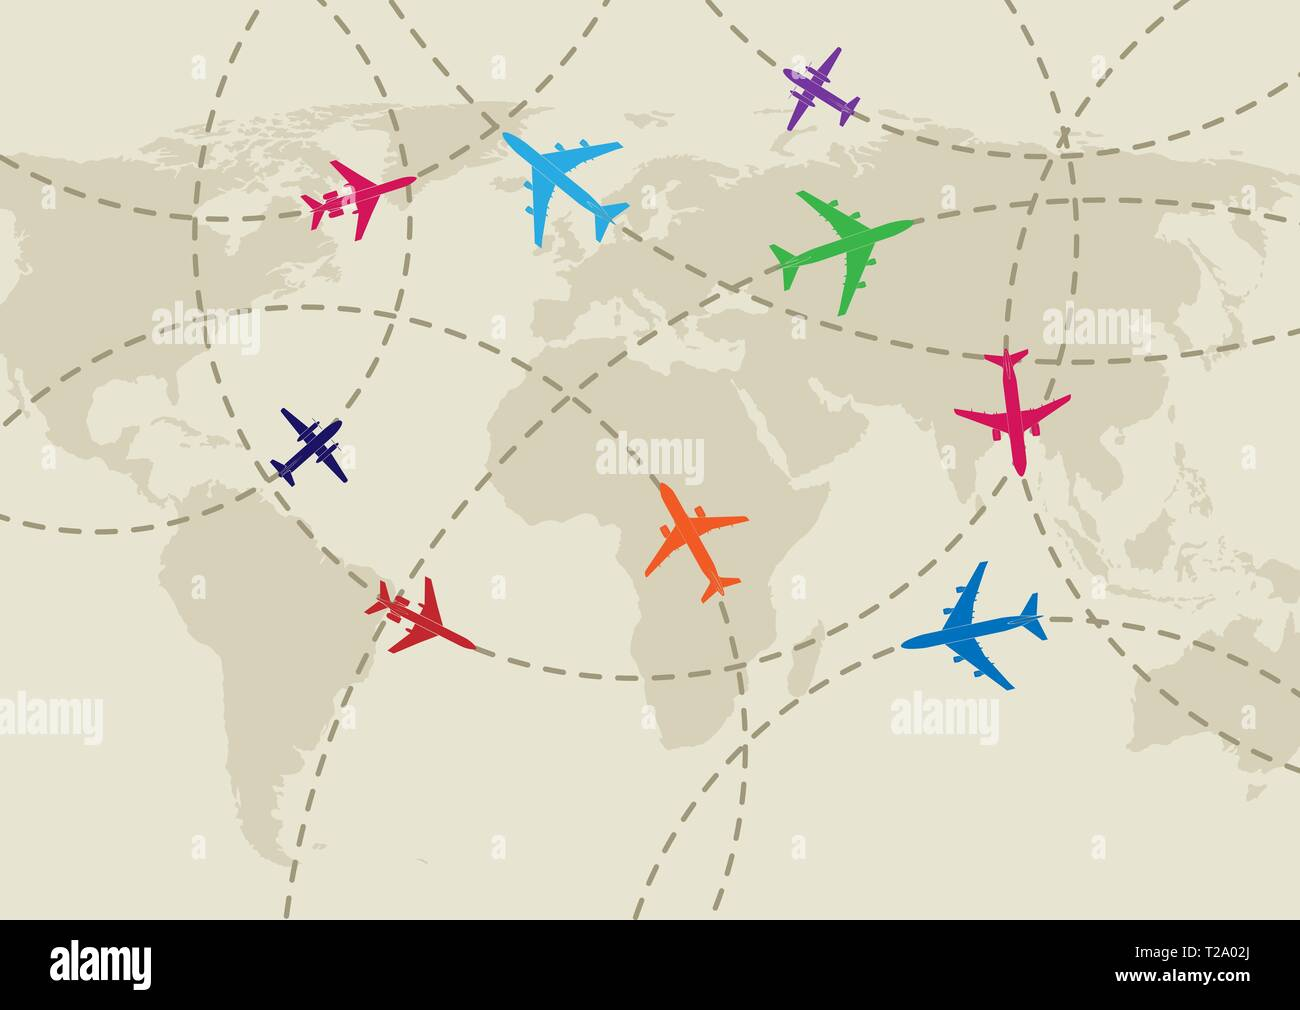 Air traffic on the world map background, simple design Stock ... on world airspace map, world drought map, world terrain map, world wind map, world weather map, world radar map, world land use map, world transport map, world pollution map, world drug map, world seismic map, world rail map, world gravity map, world railway map, world crime map, world flight map, world climate map, world heat map, world snowfall map, world road map,